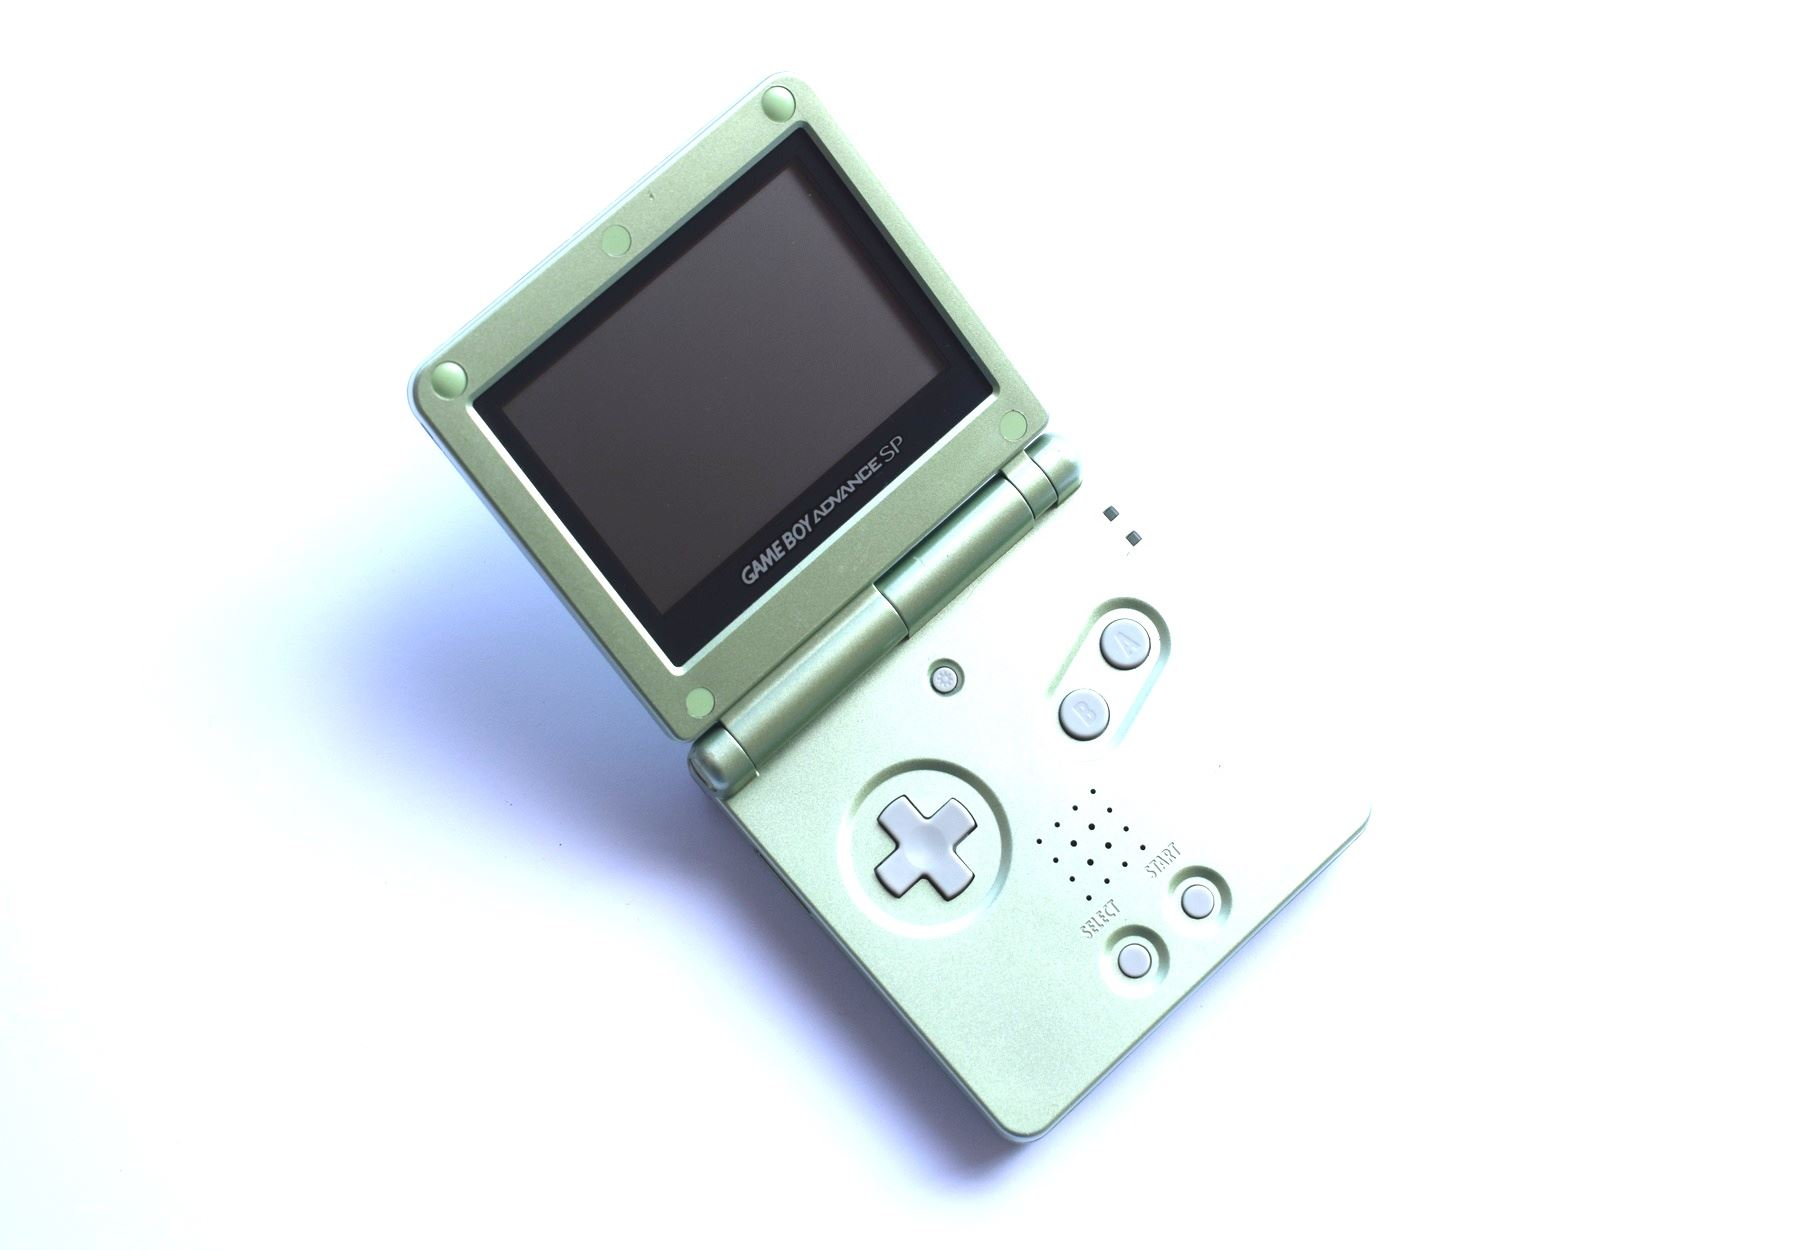 Nintendo-Gameboy-SP-Game-Boy-Advance-GBA-Console-System-6-Colour-Options thumbnail 32